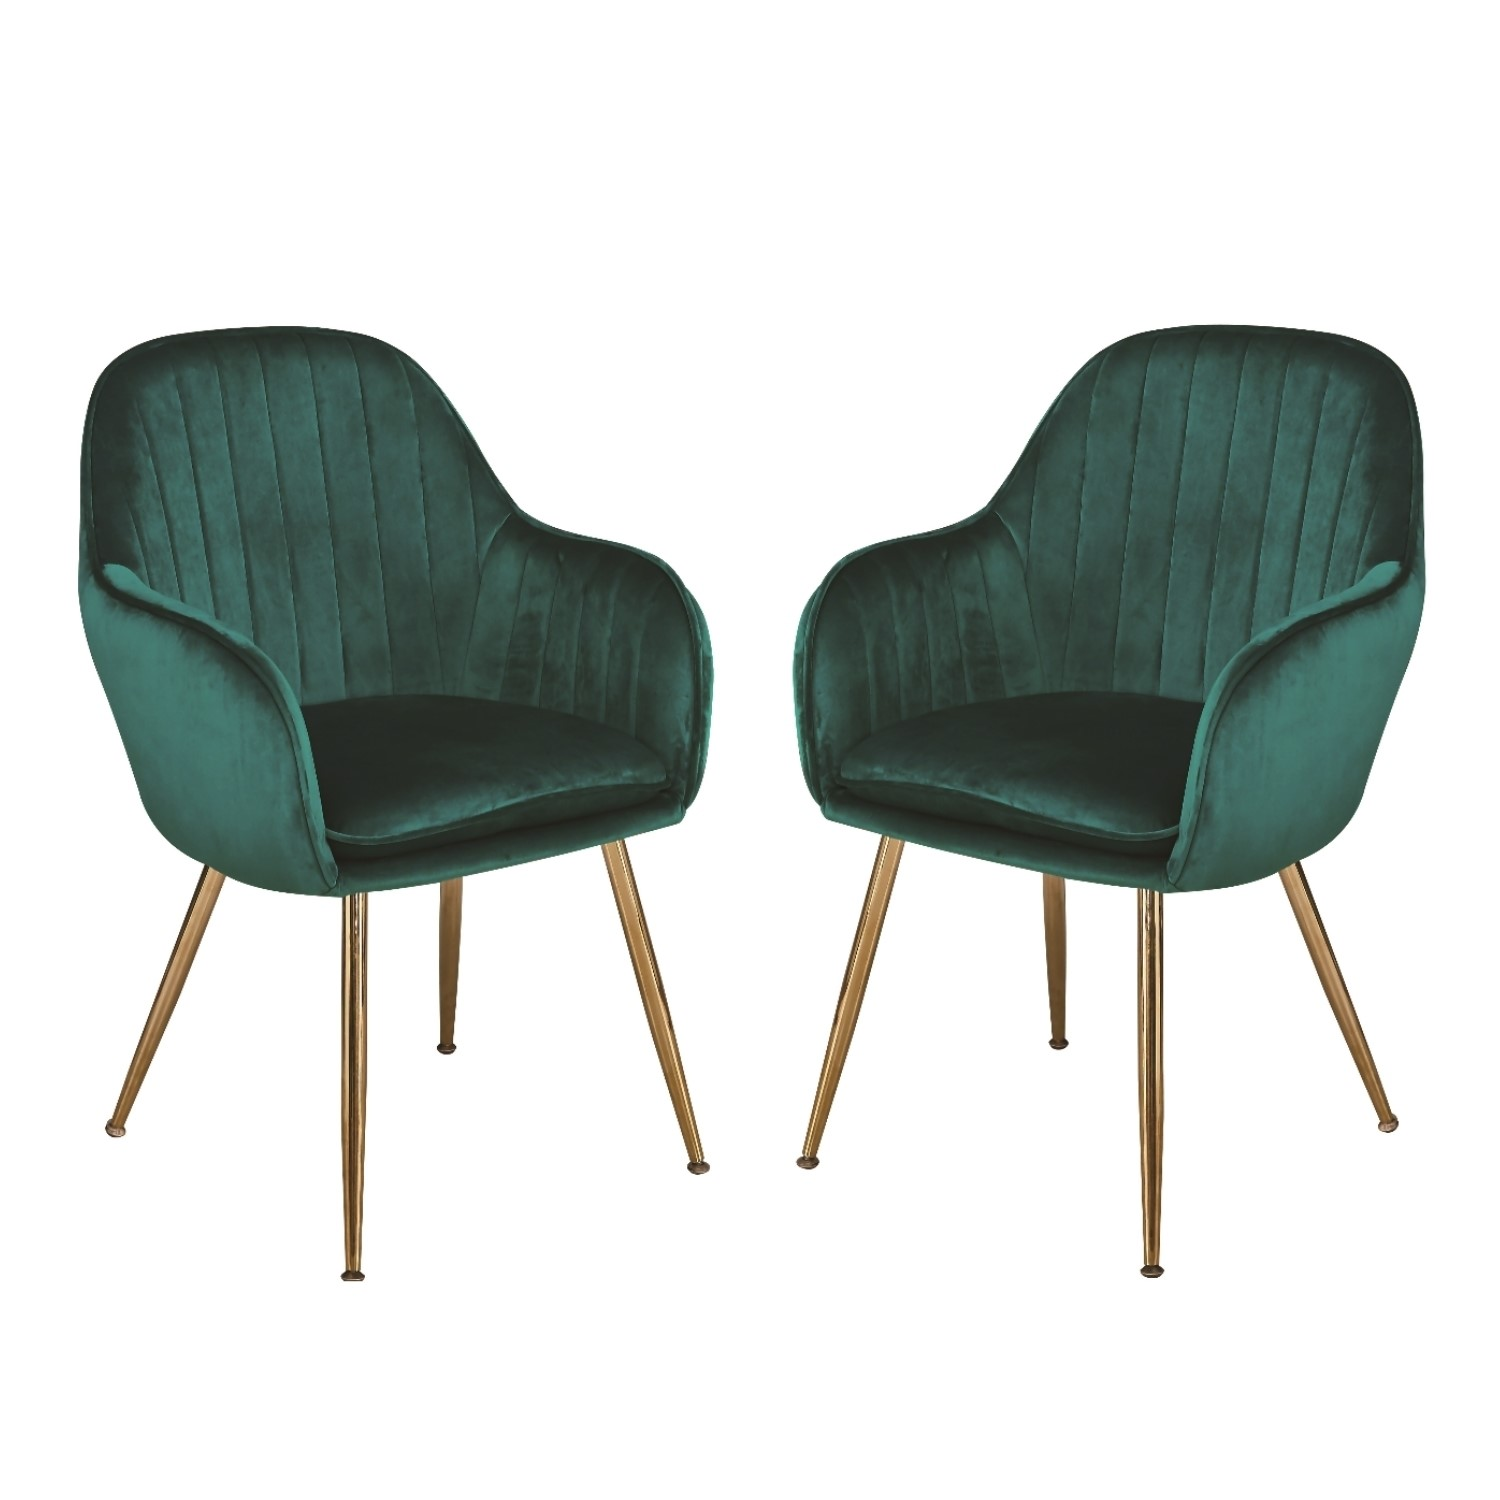 Set Of 2 Green Velvet Dining Chairs With Gold Legs Lara Furniture123